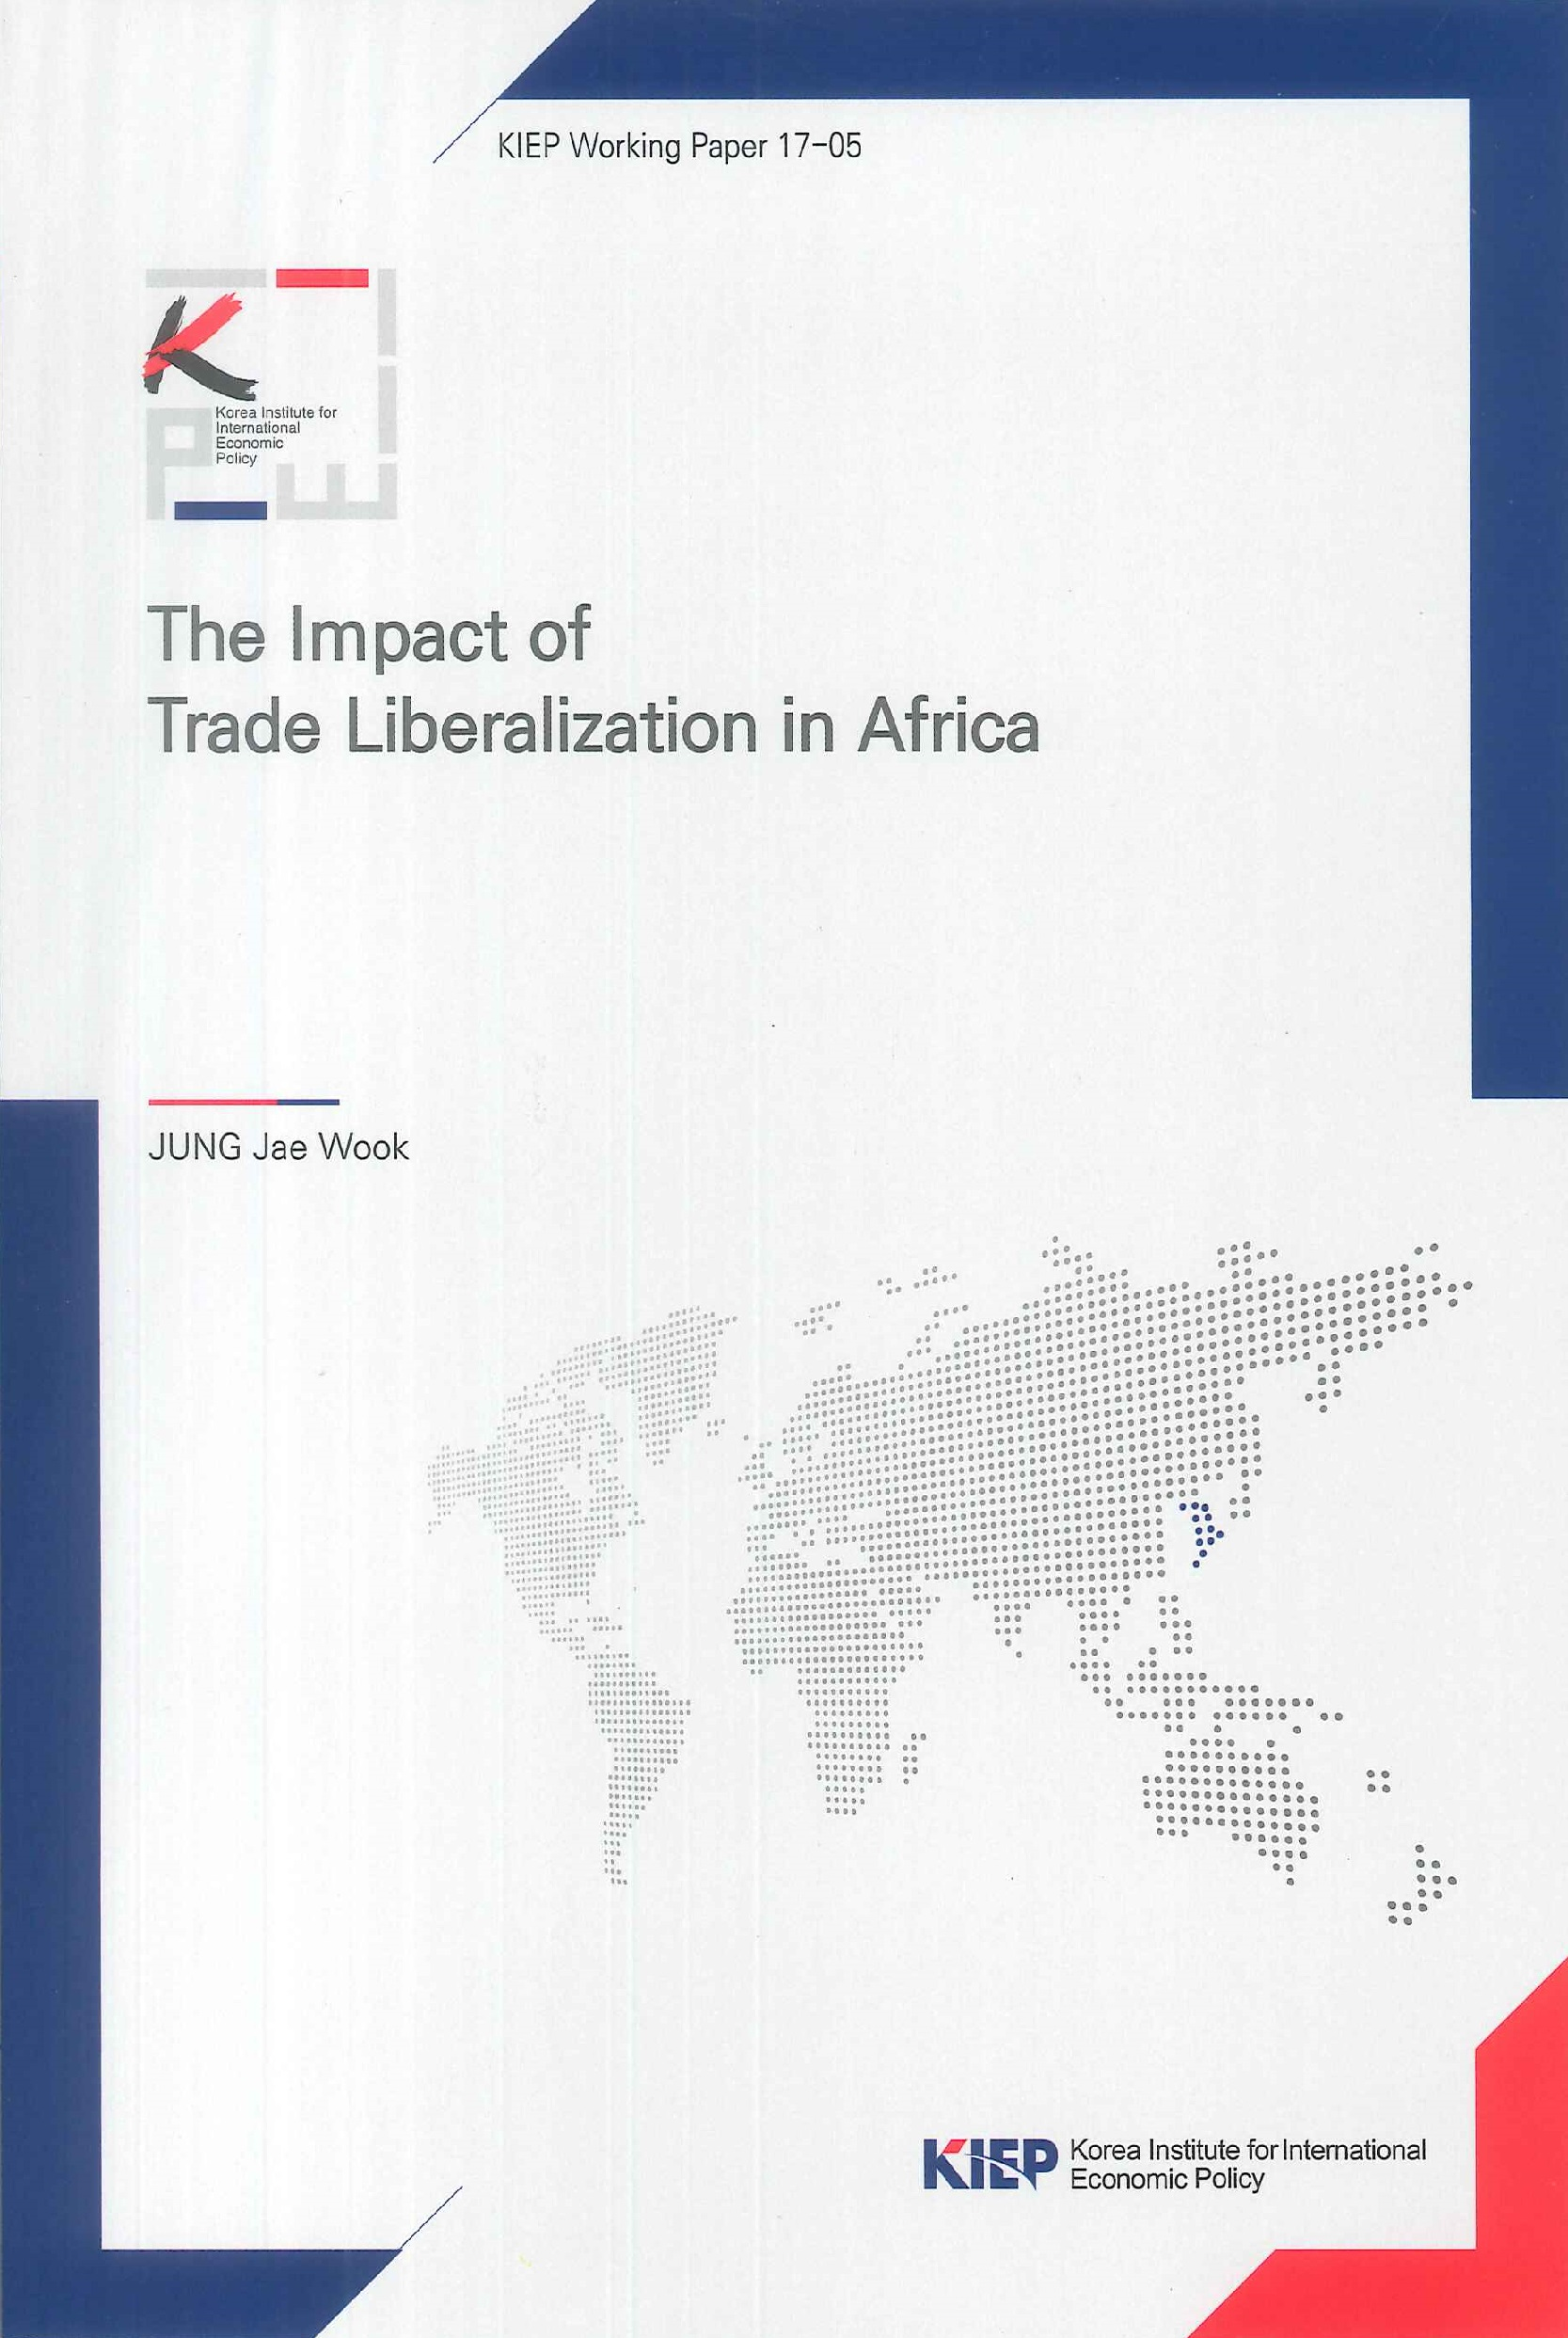 The impact of trade liberalization in Africa